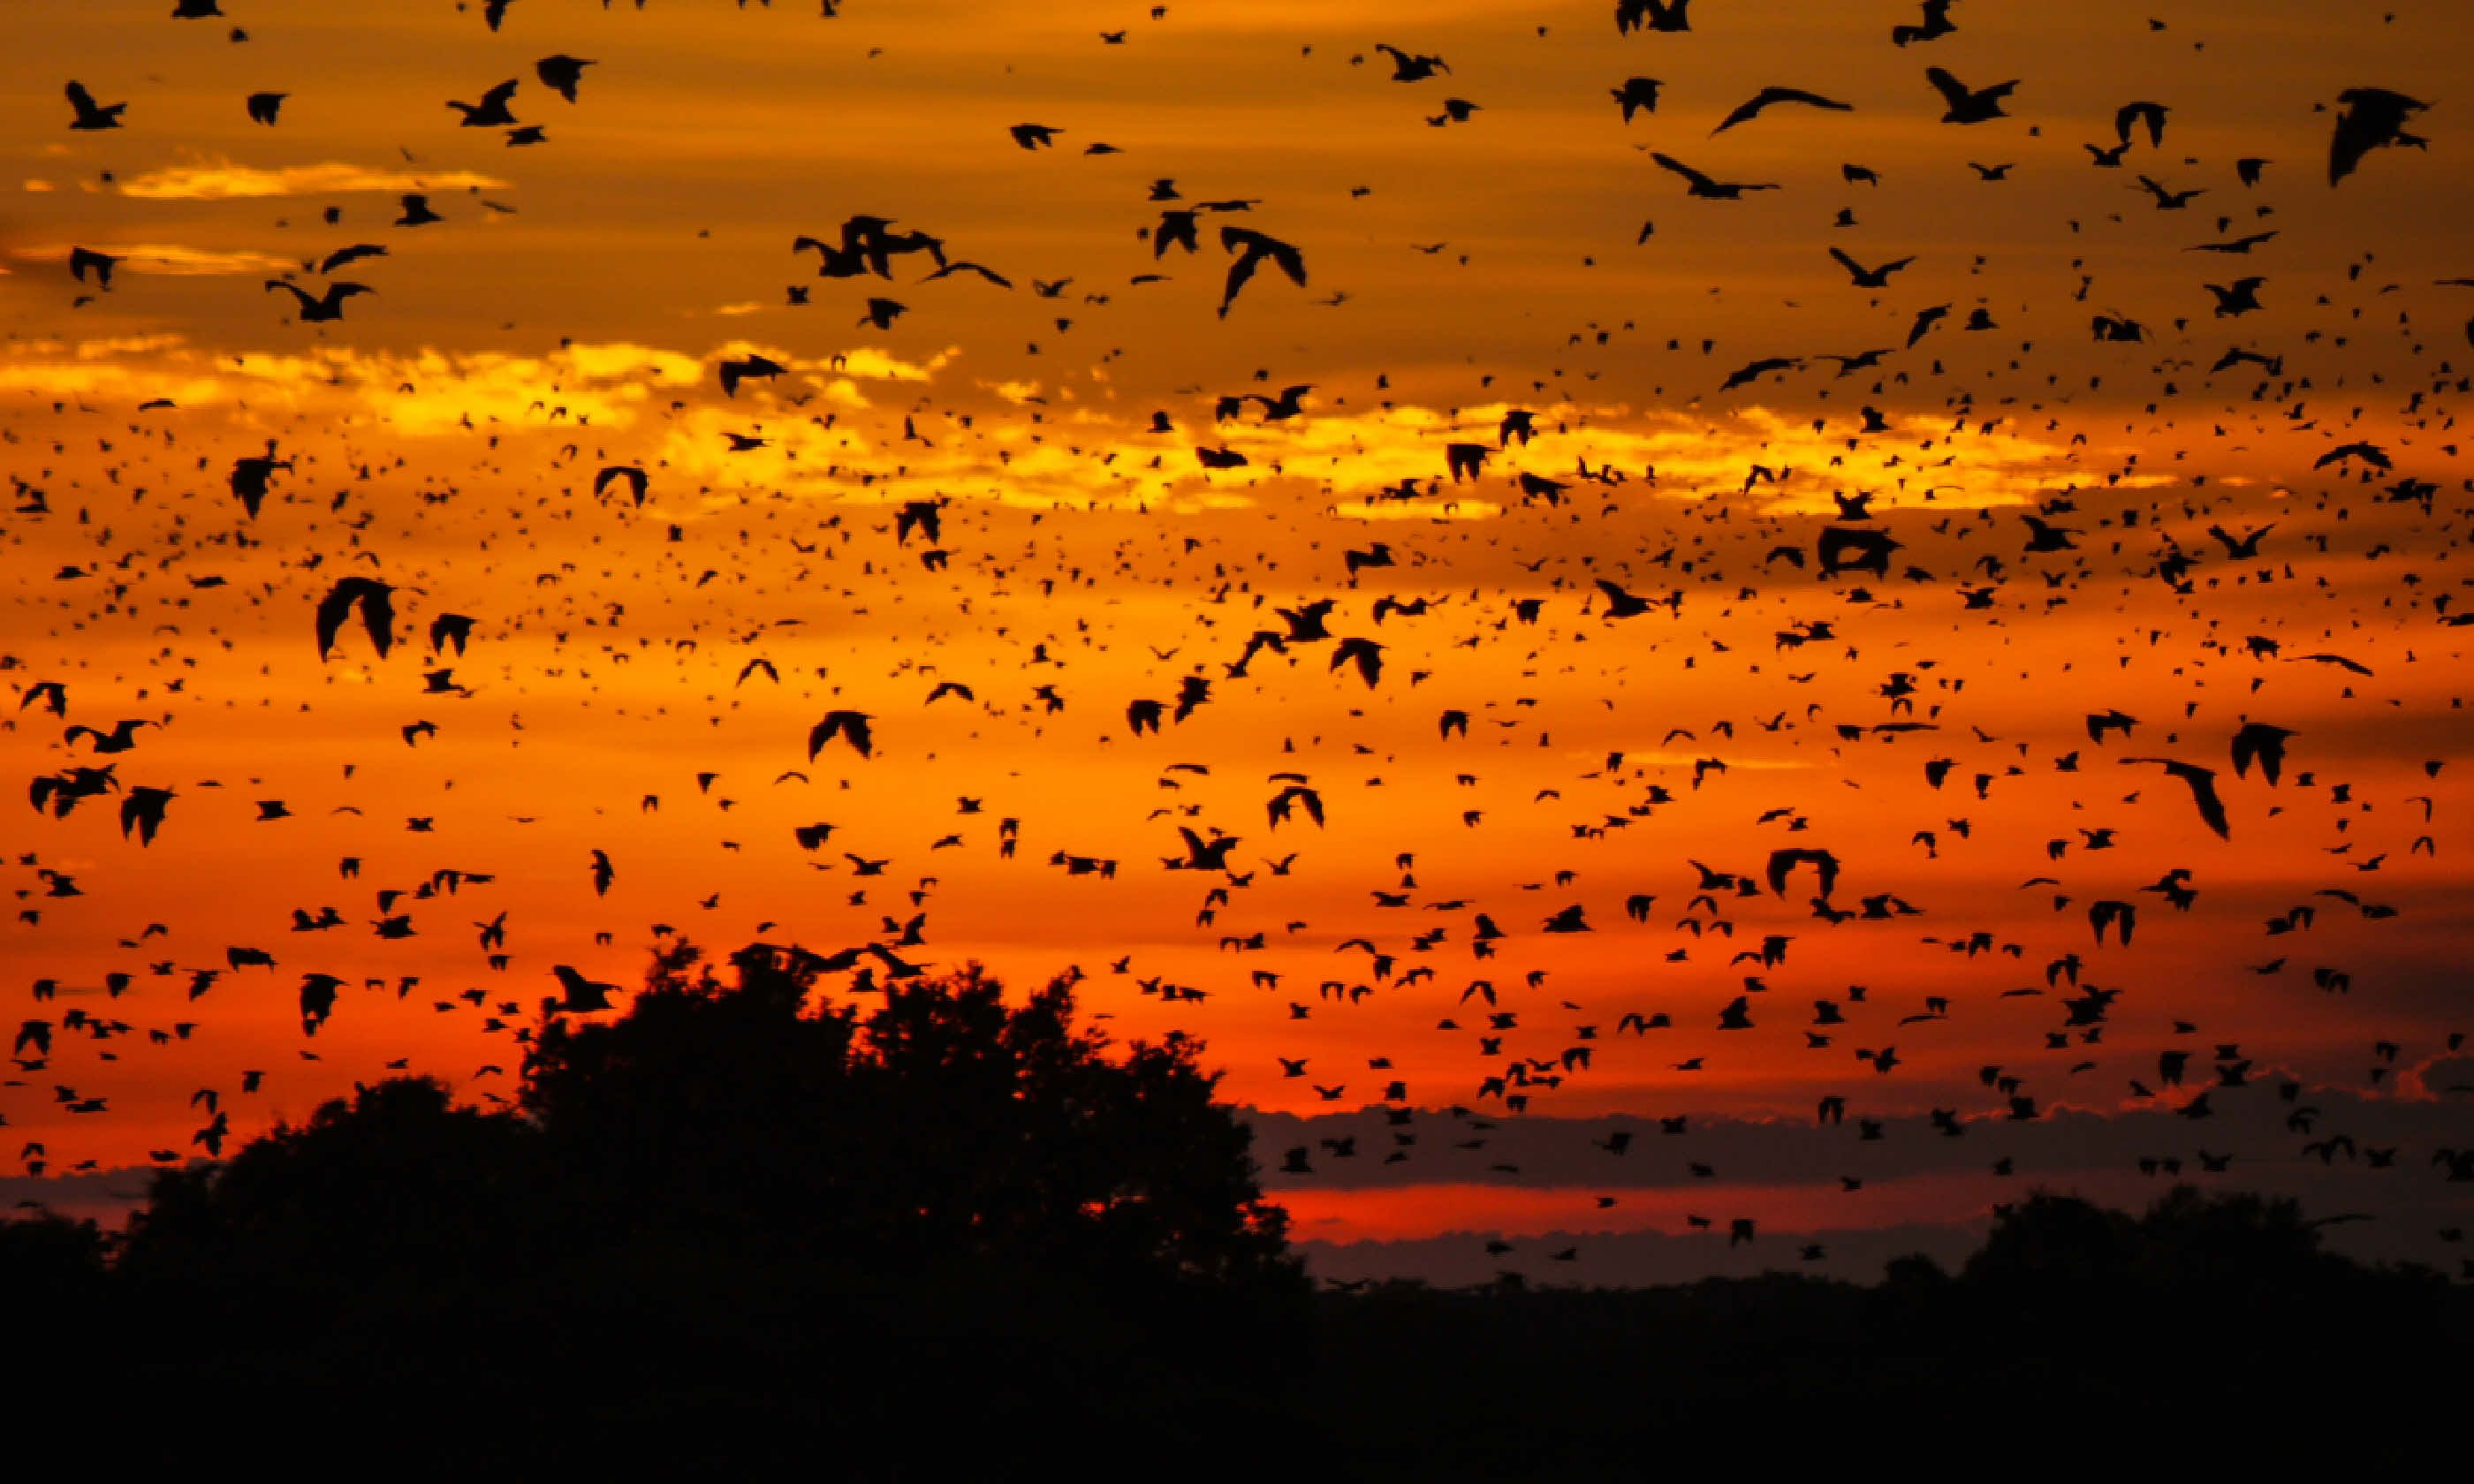 Zambia bats at sunset (Dreamstime)